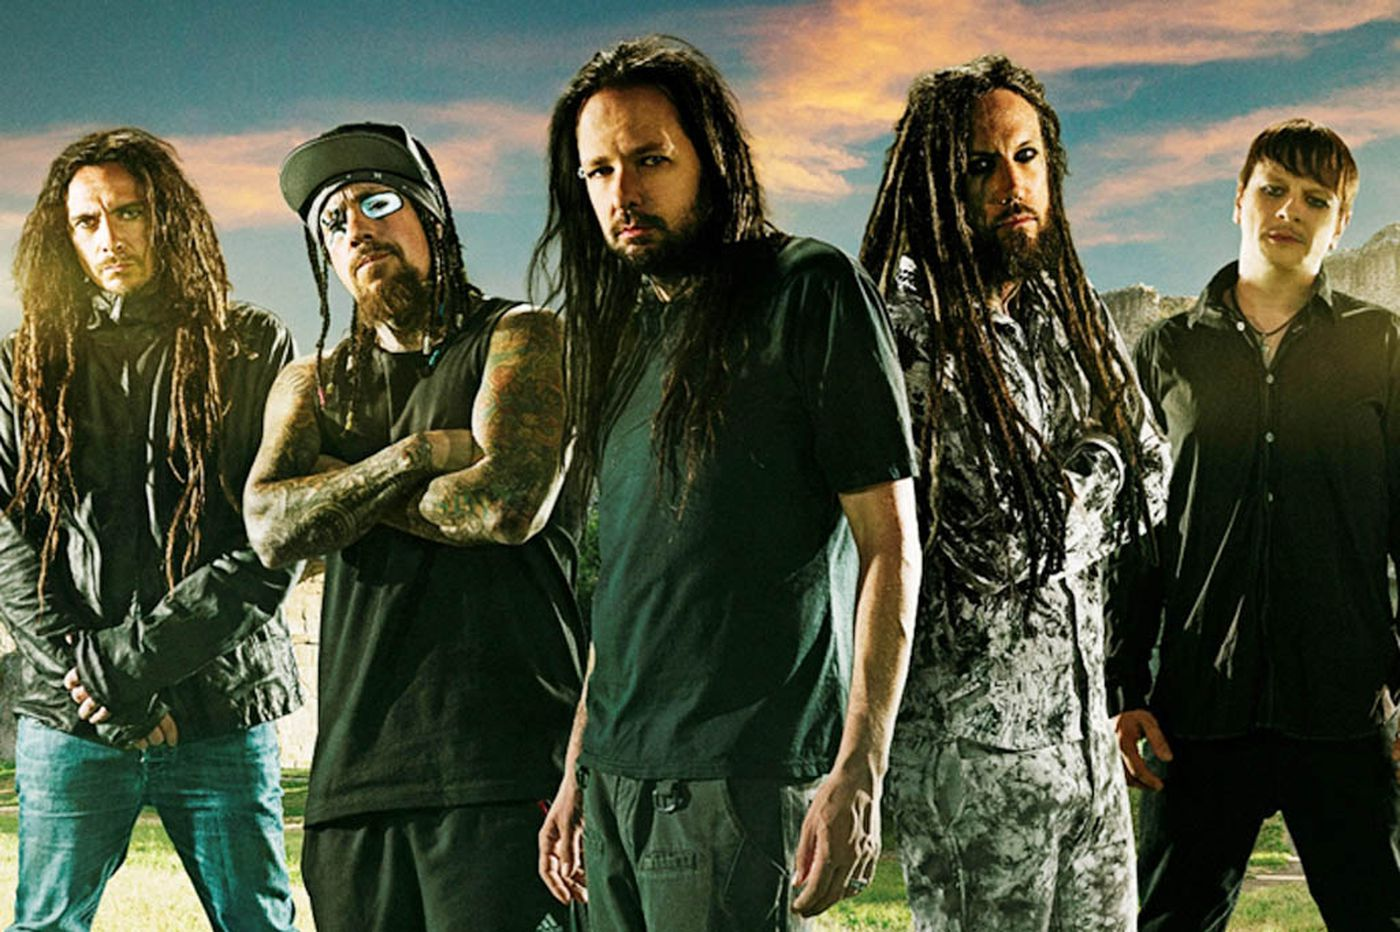 For its current 'Hell'-ish tour, Korn turns to some old kernels